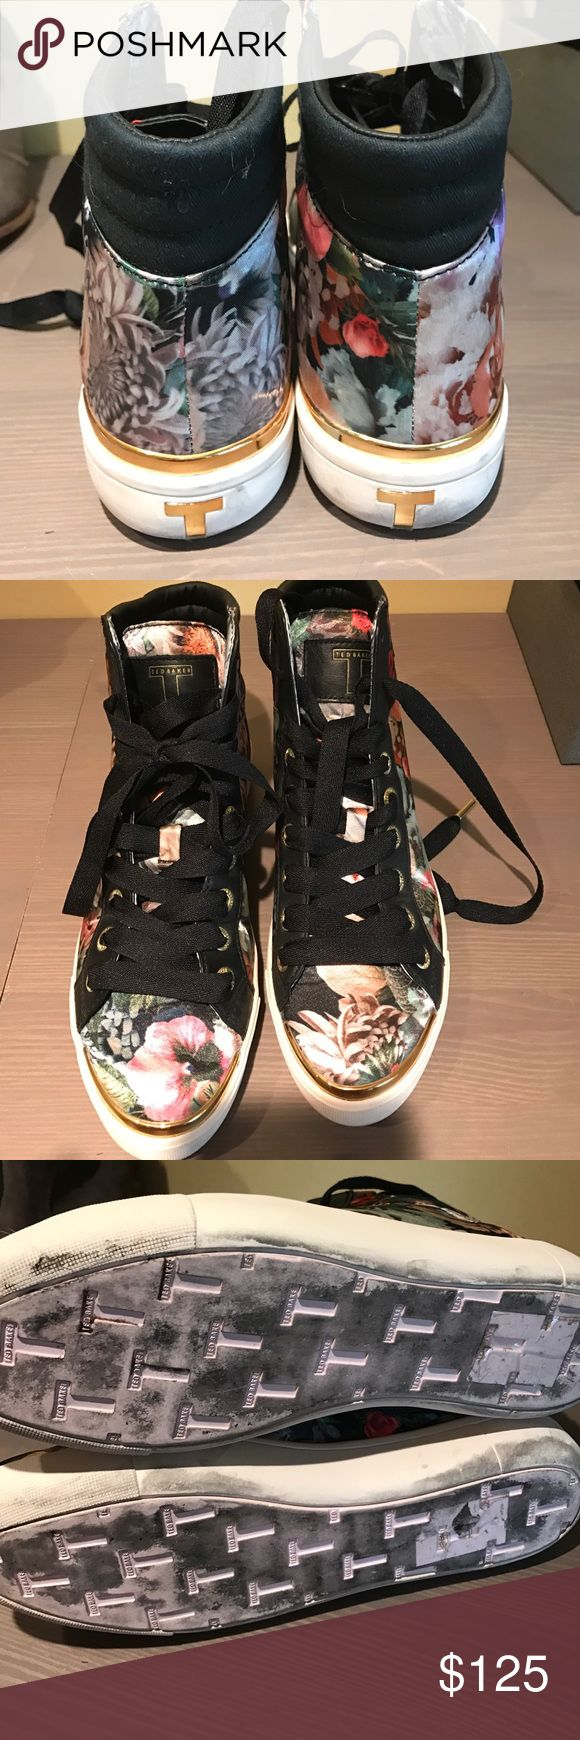 Ted Baker High Top Sneakers Flower Satin Printed High Tops Ted Baker Shoes Sneakers